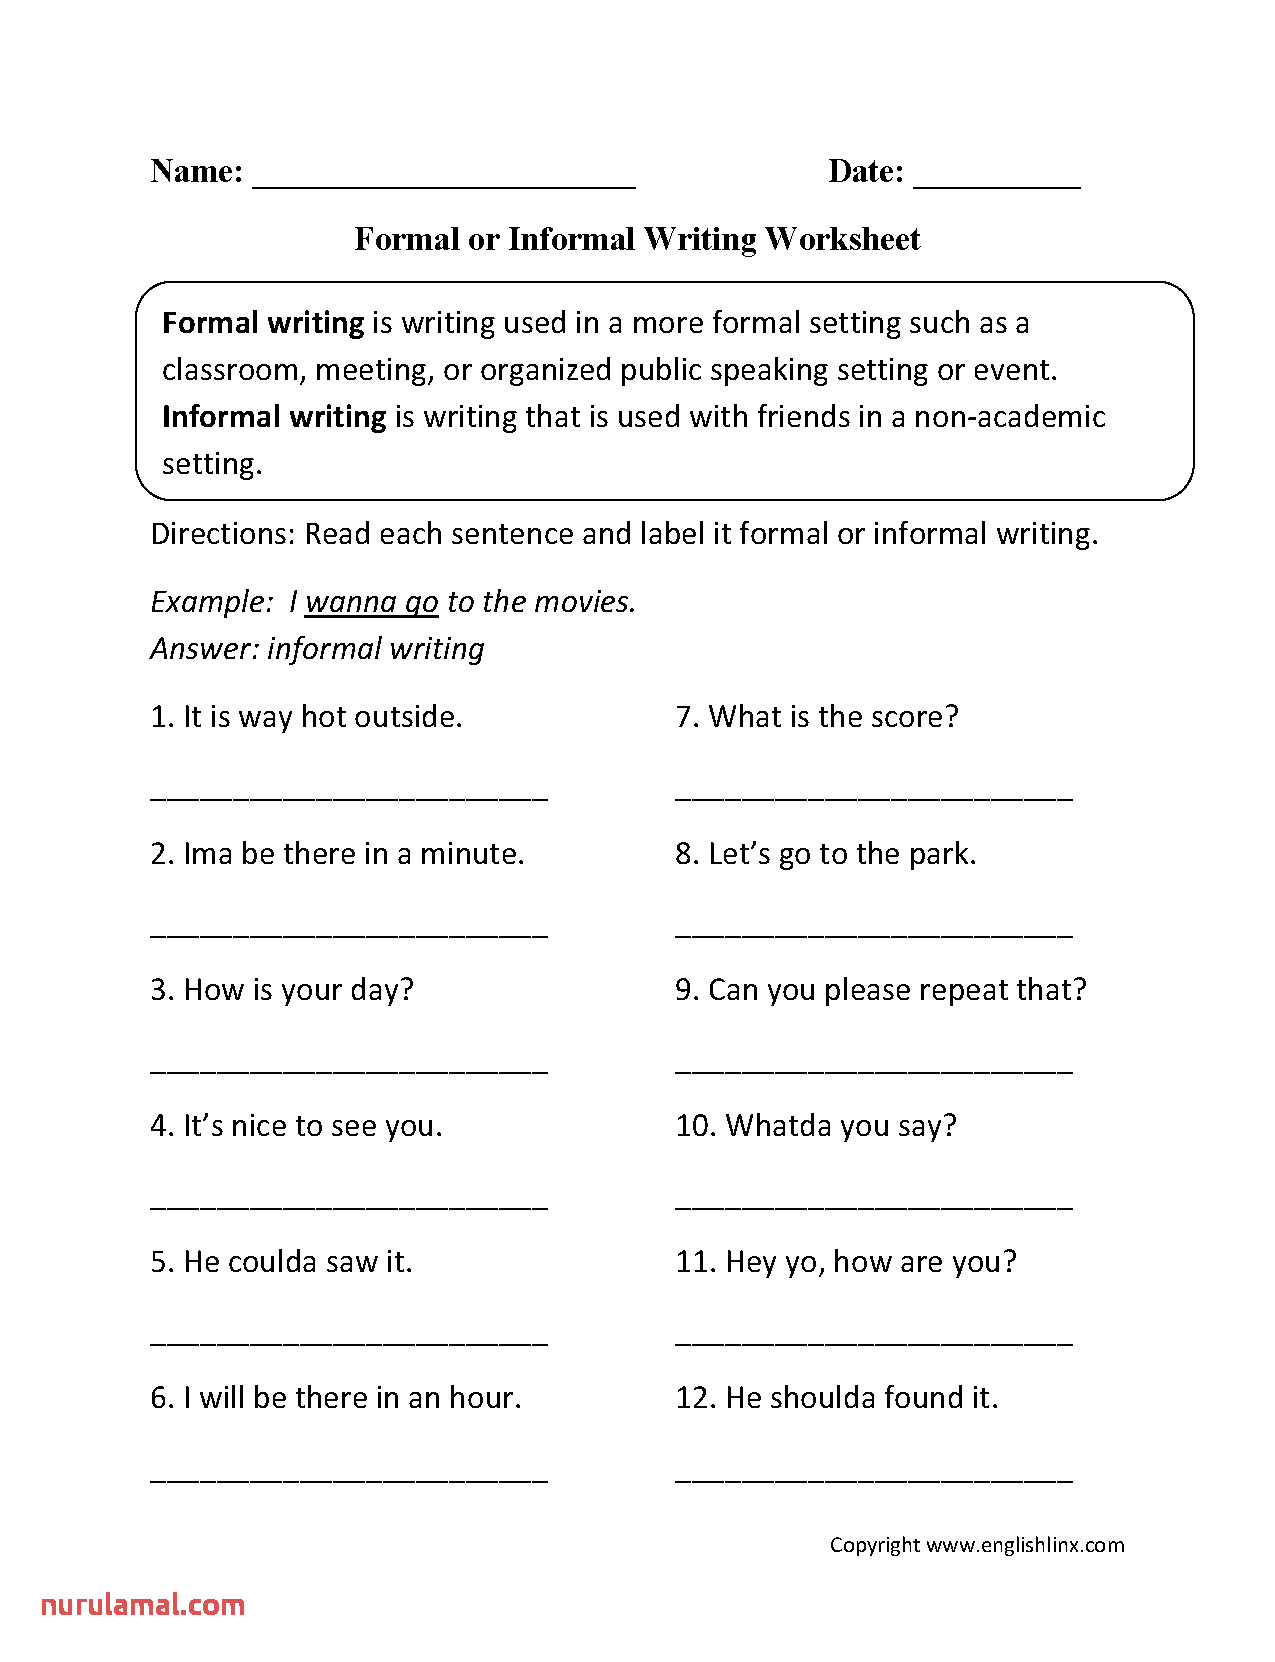 Formal or Informal Writing Worksheet